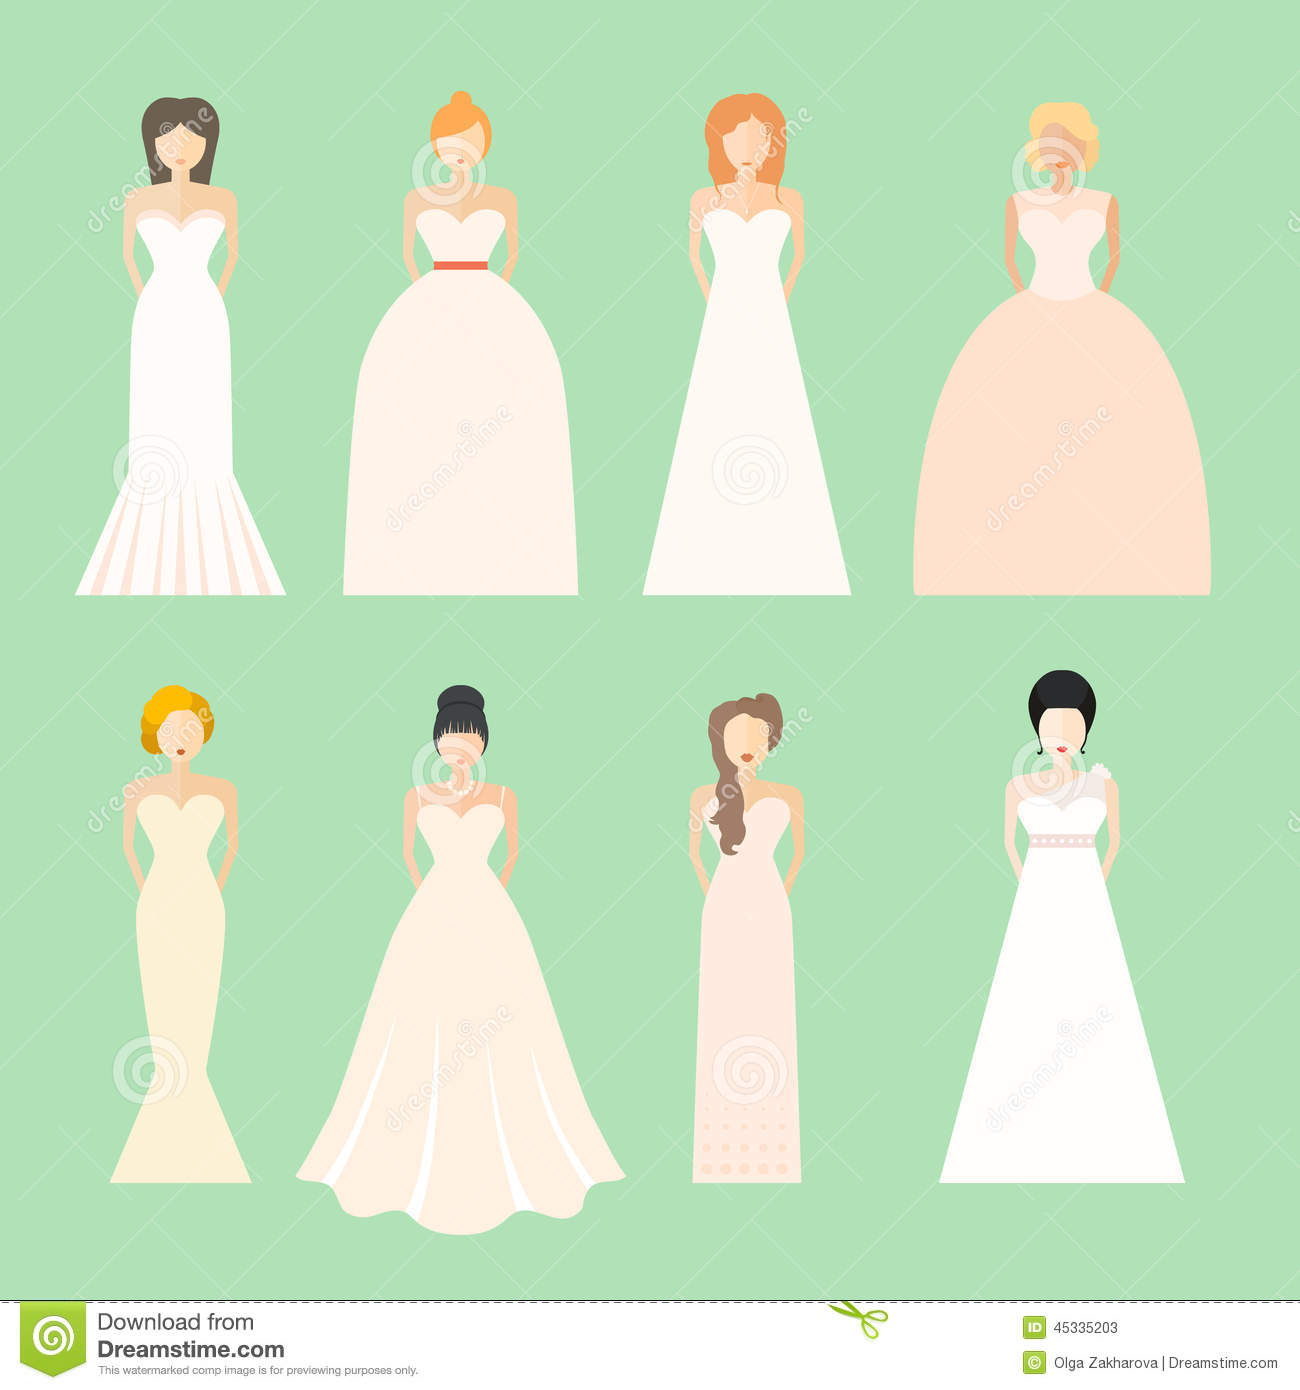 How to Choose Wedding Dress for Your Body Type